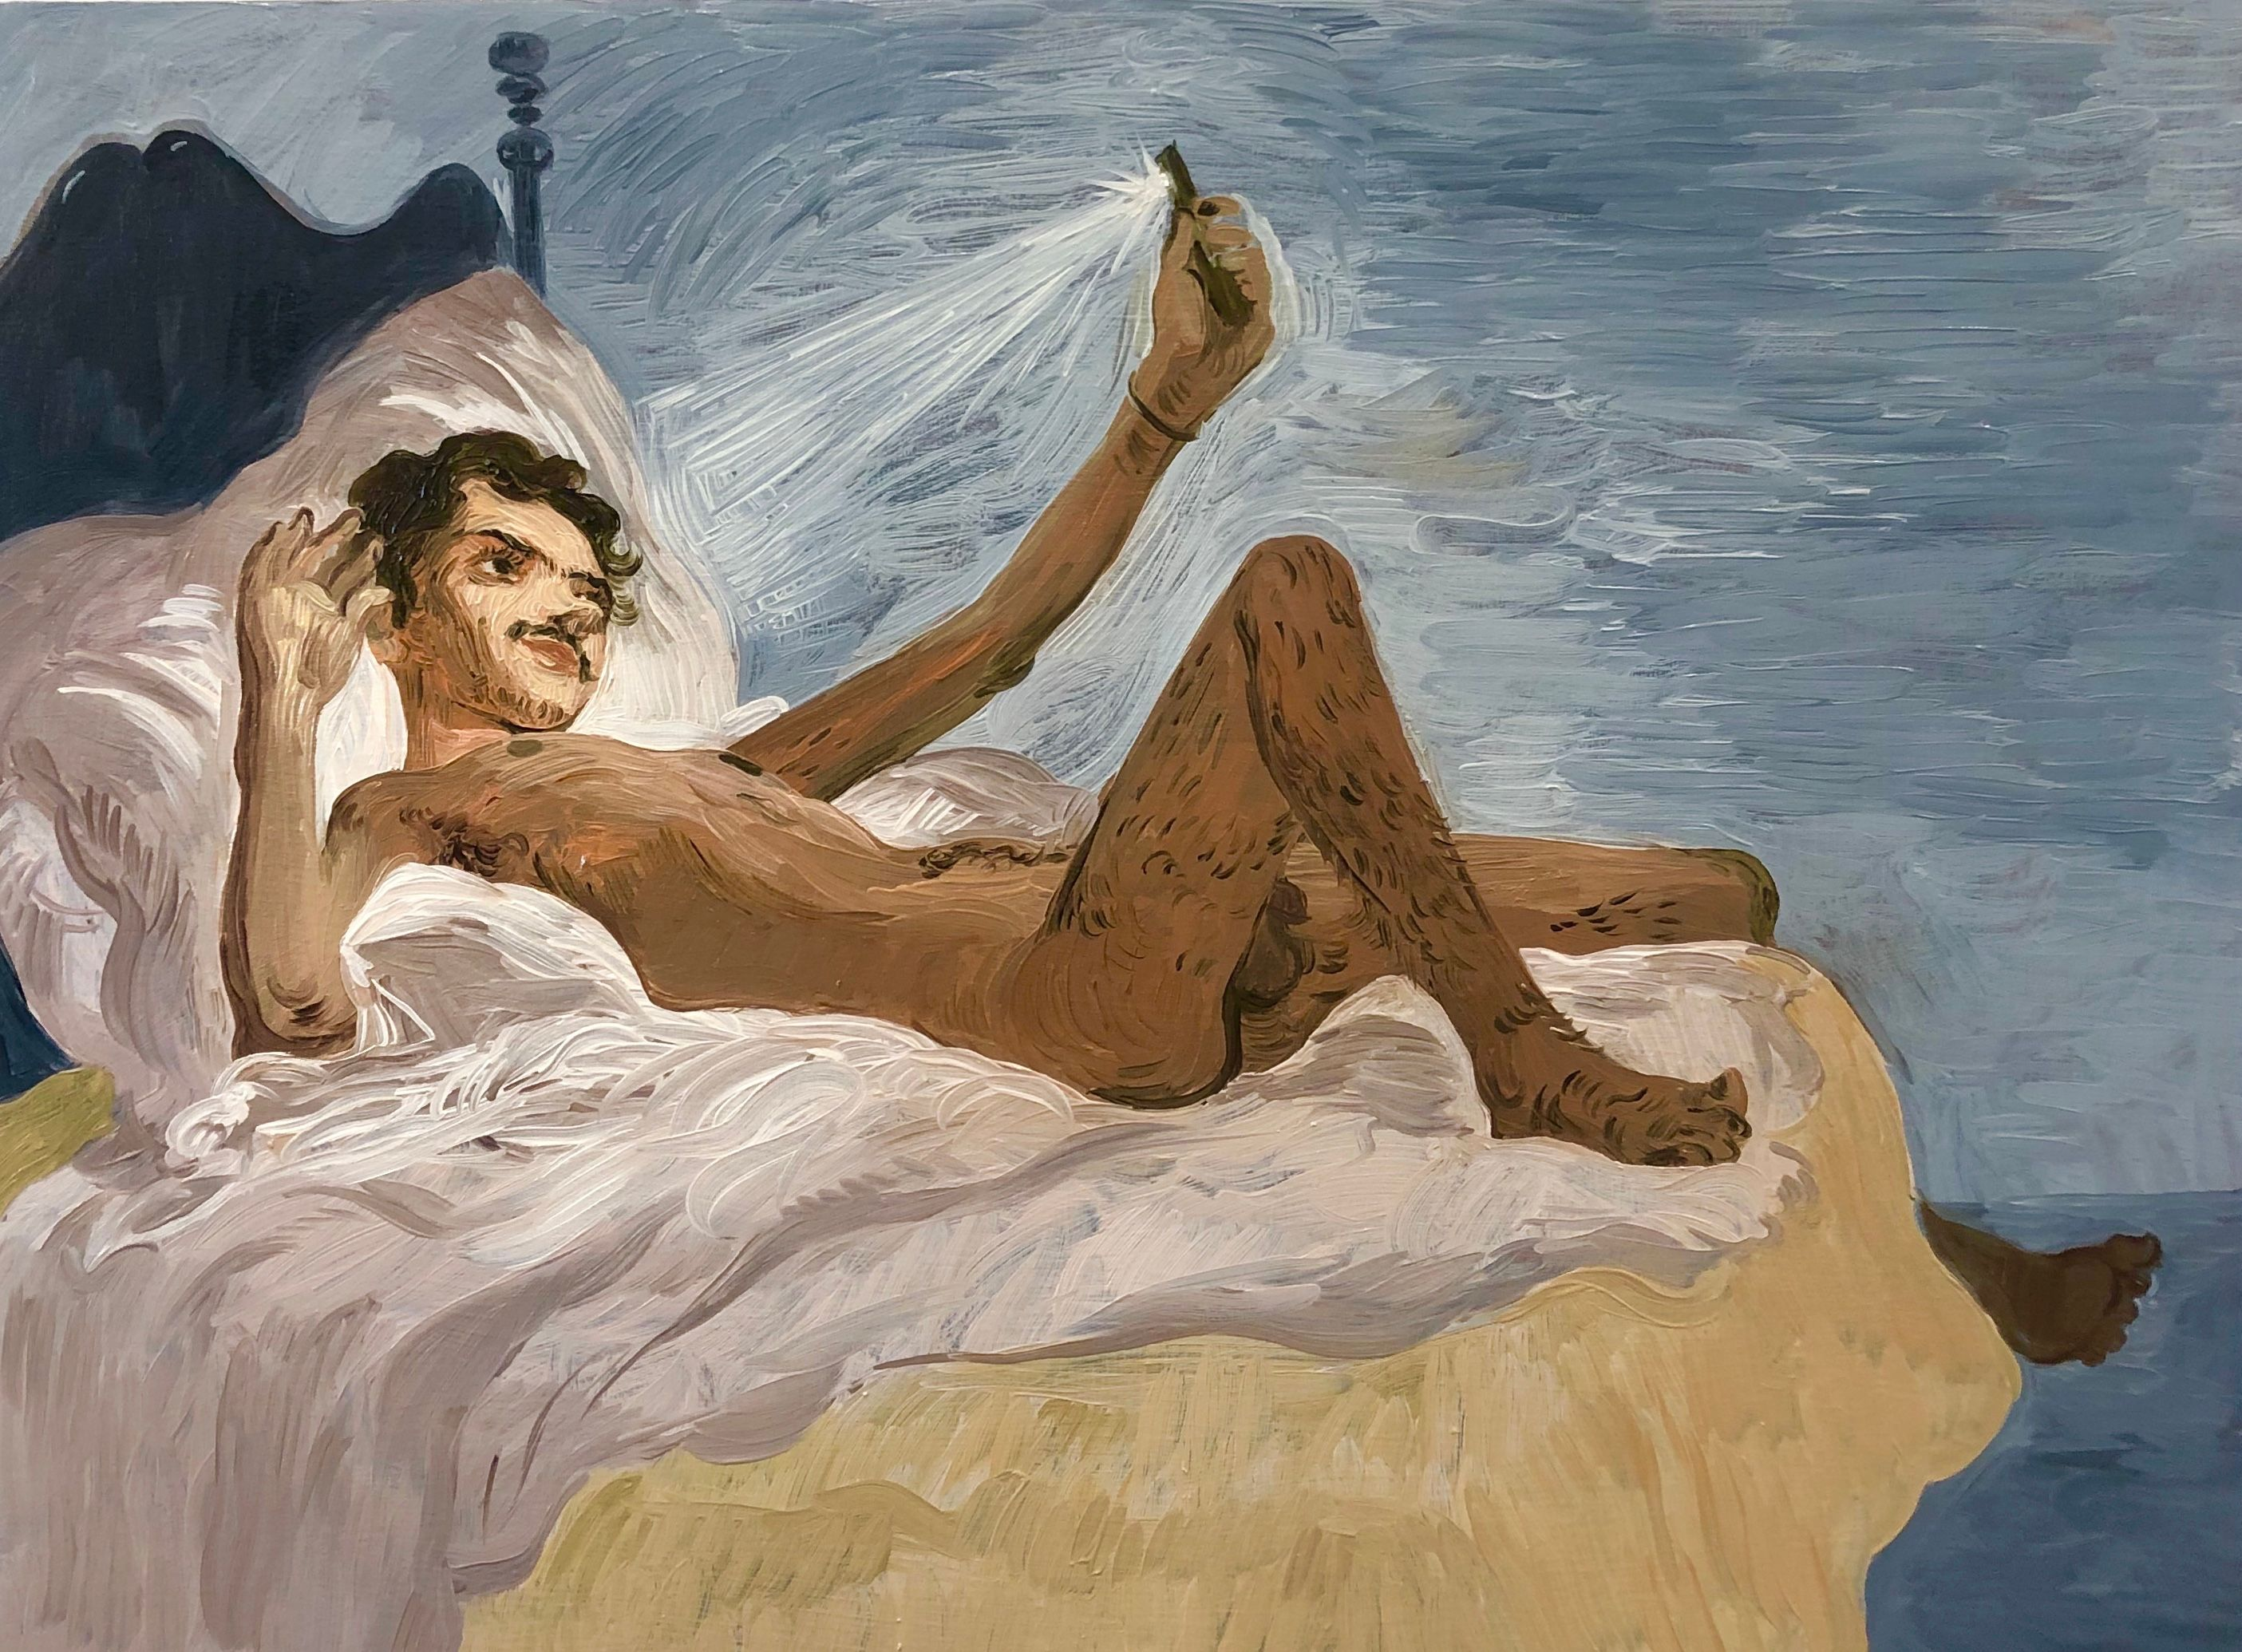 Salman Toor, Bedroom Boy, 2019, Whitney Museum of American Art